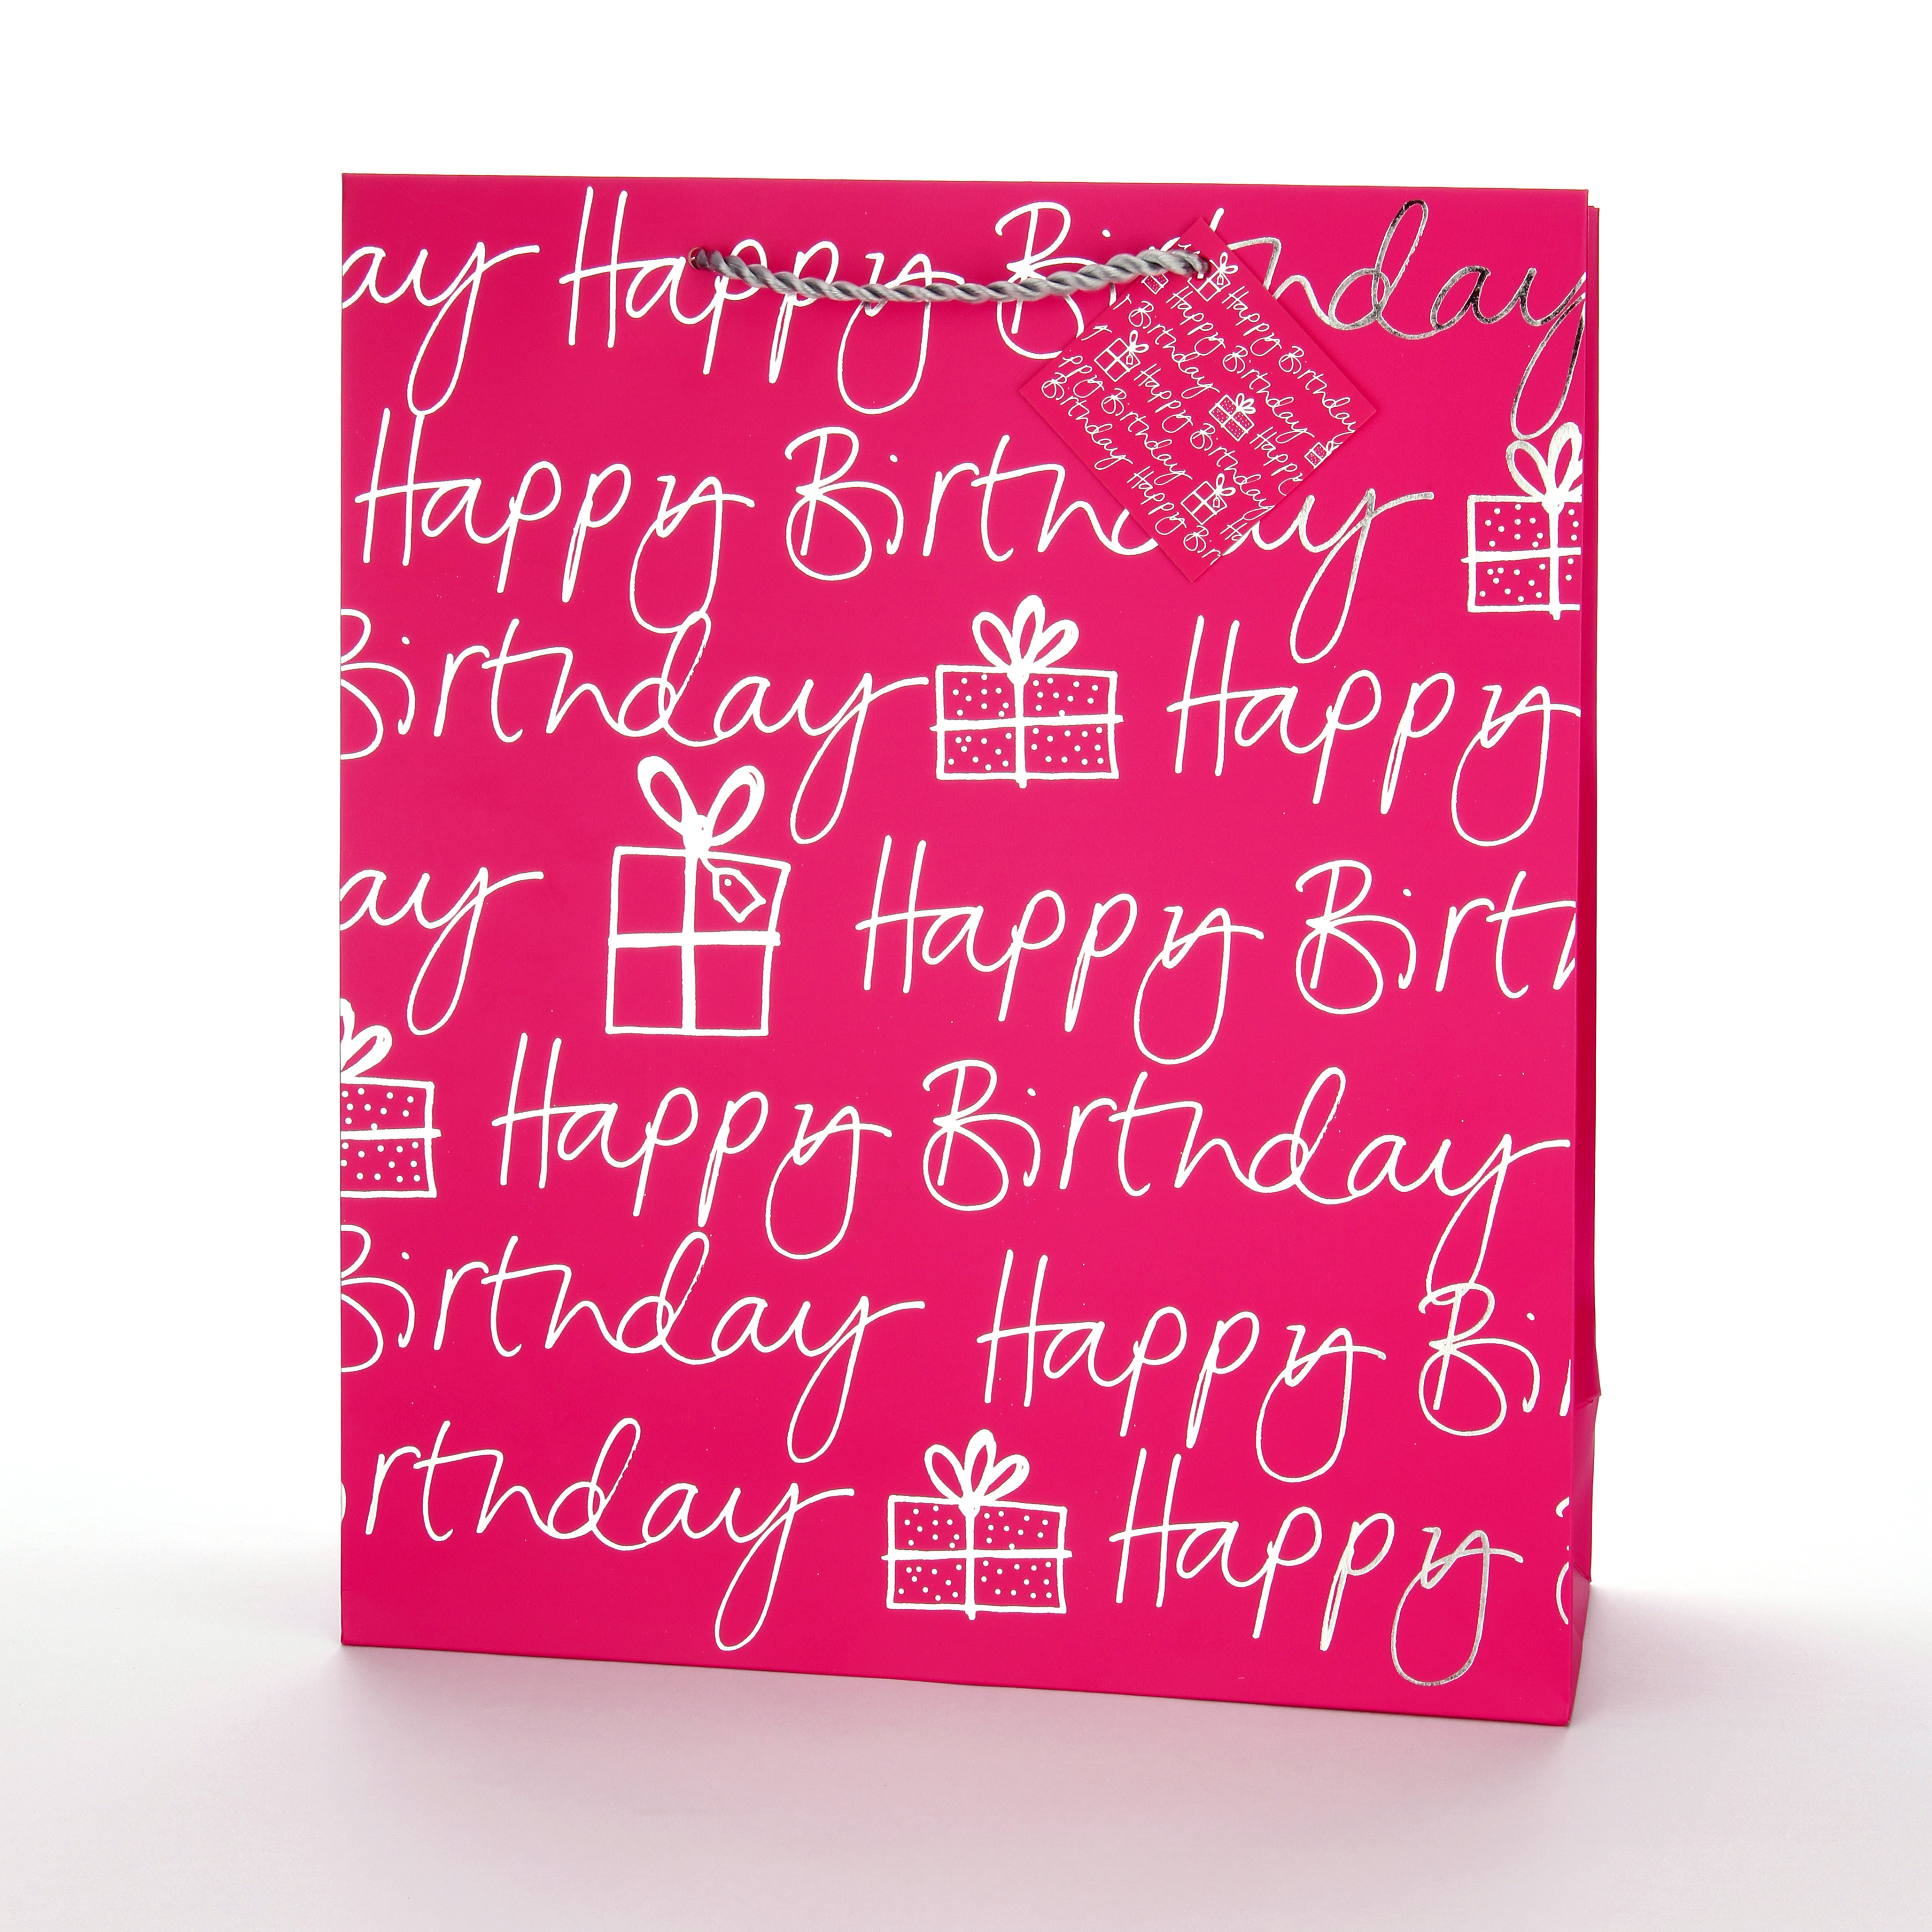 Home CLASSIC GIFT OTHER GIFTS BAGS Glick Extra Large Handle Gift Bag Happy Birthday Pink